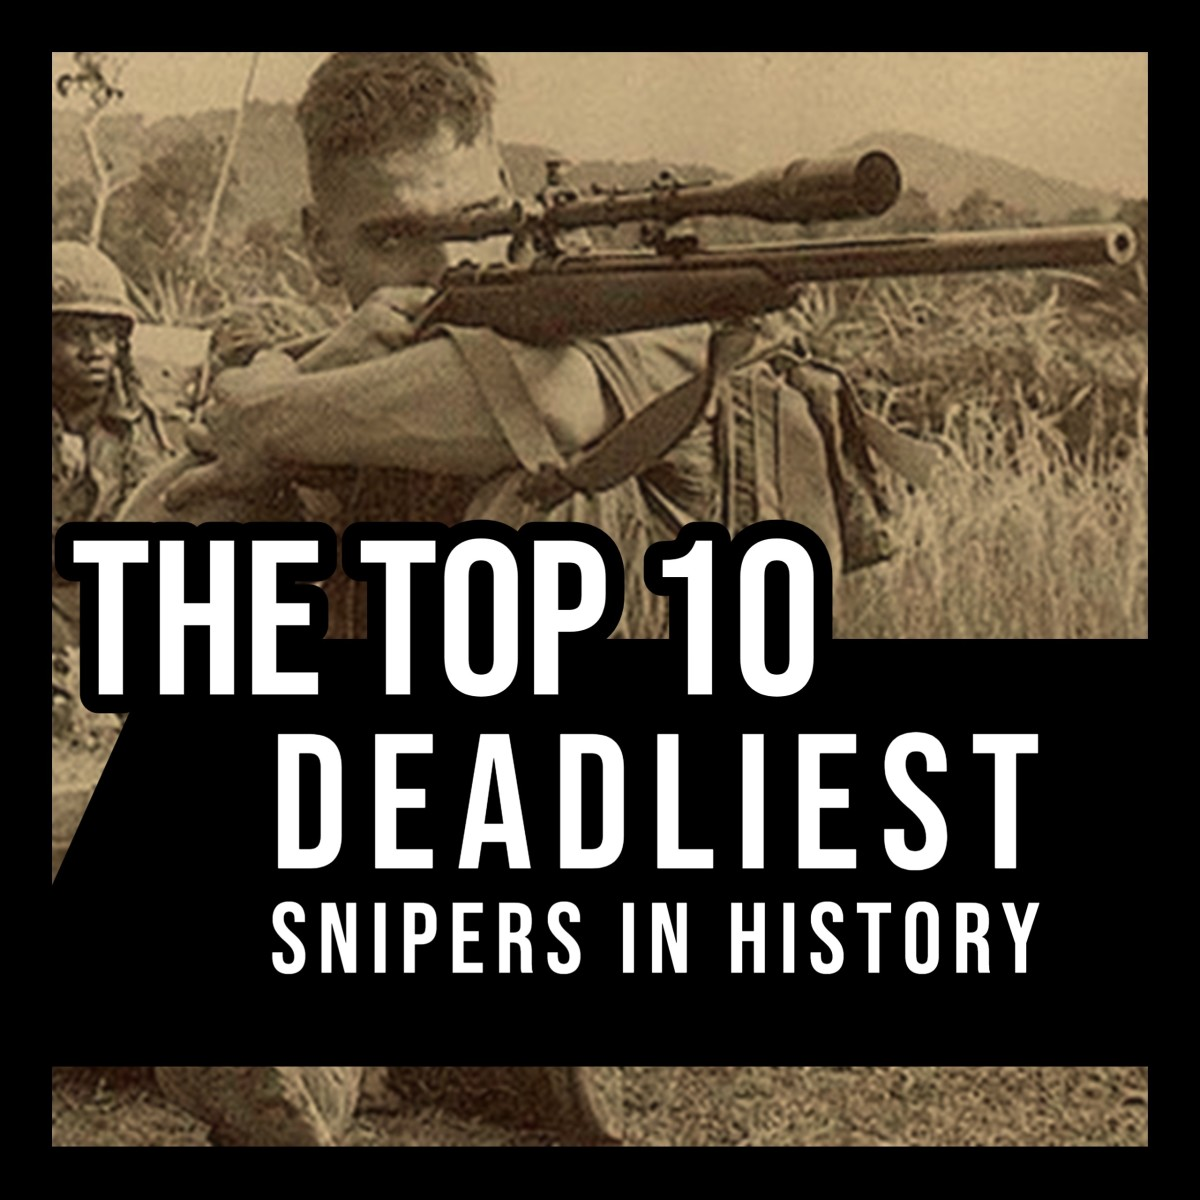 From Chuck Mawhinney to Carlos Hathcock, this article examines the 10 deadliest (and most effective) snipers in history.